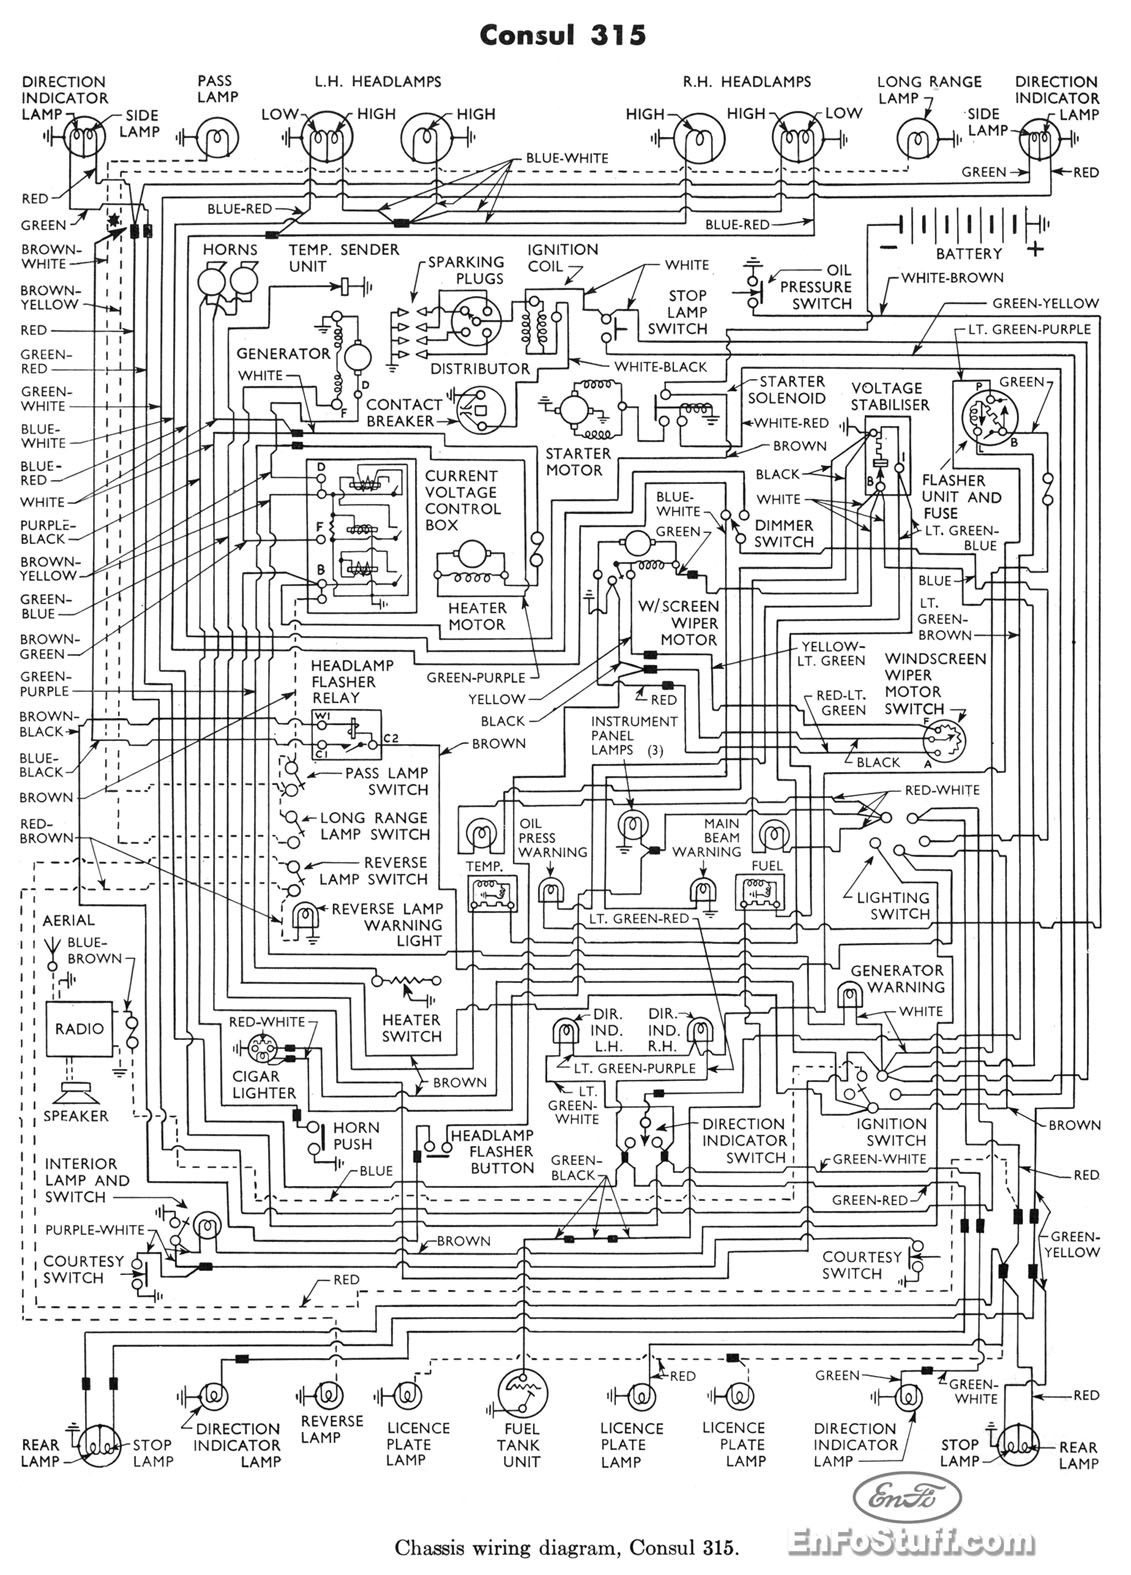 3930 ford tractor wiring diagram wiring diagram for 3930 ford 3930 ford tractor wiring diagram wiring diagram for 3930 ford tractor the wiring diagram